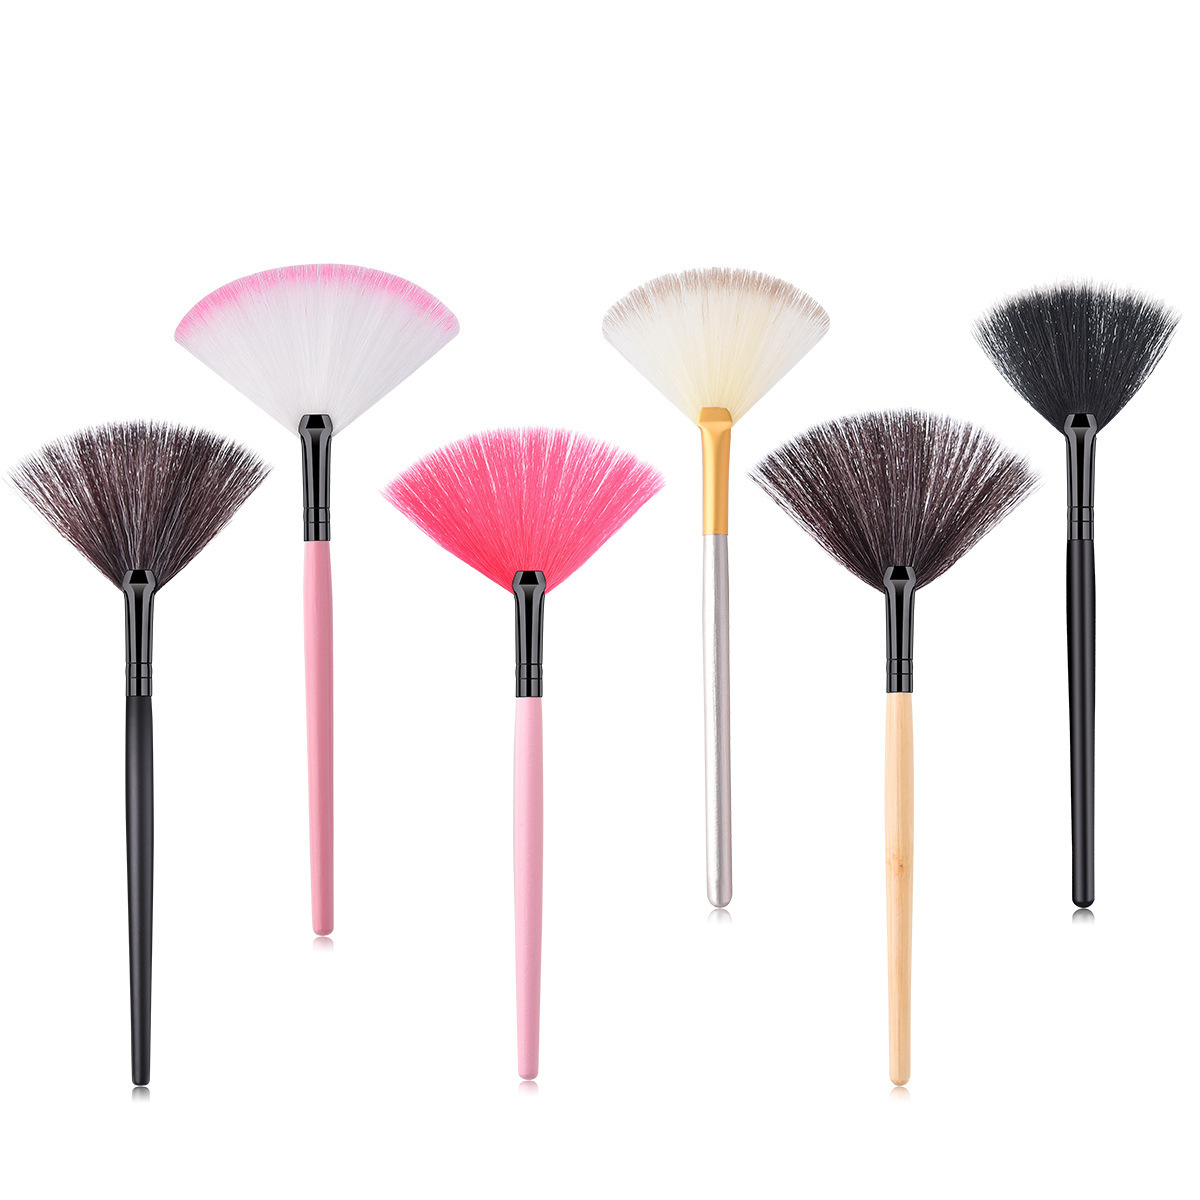 Fashion Professional Cosmetic Tools Accessories Fan Shape Makeup Brush Highlighter Face Powder Brush For Face Make Up Maquiagem